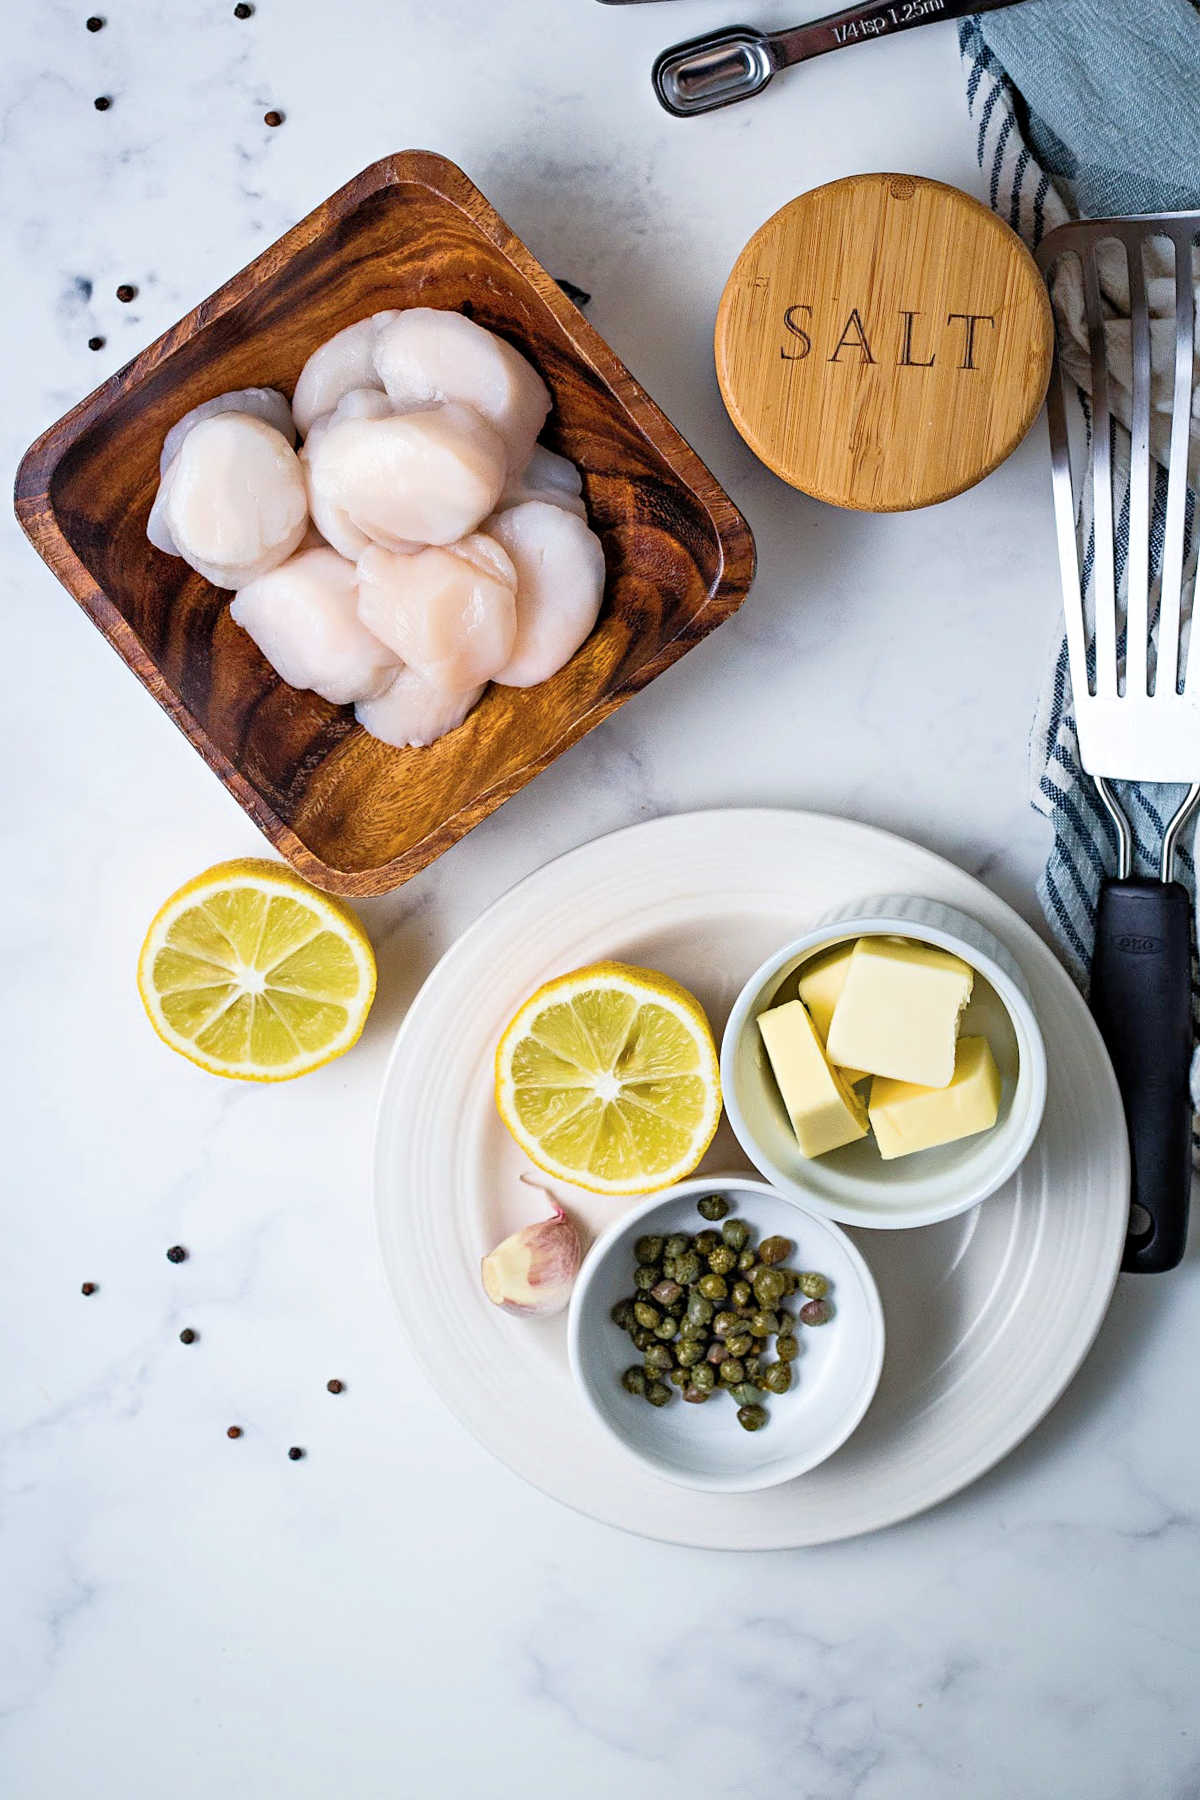 ingredients for making seared scallops on a counter: raw scallops, lemon, capers, butter, and salt.